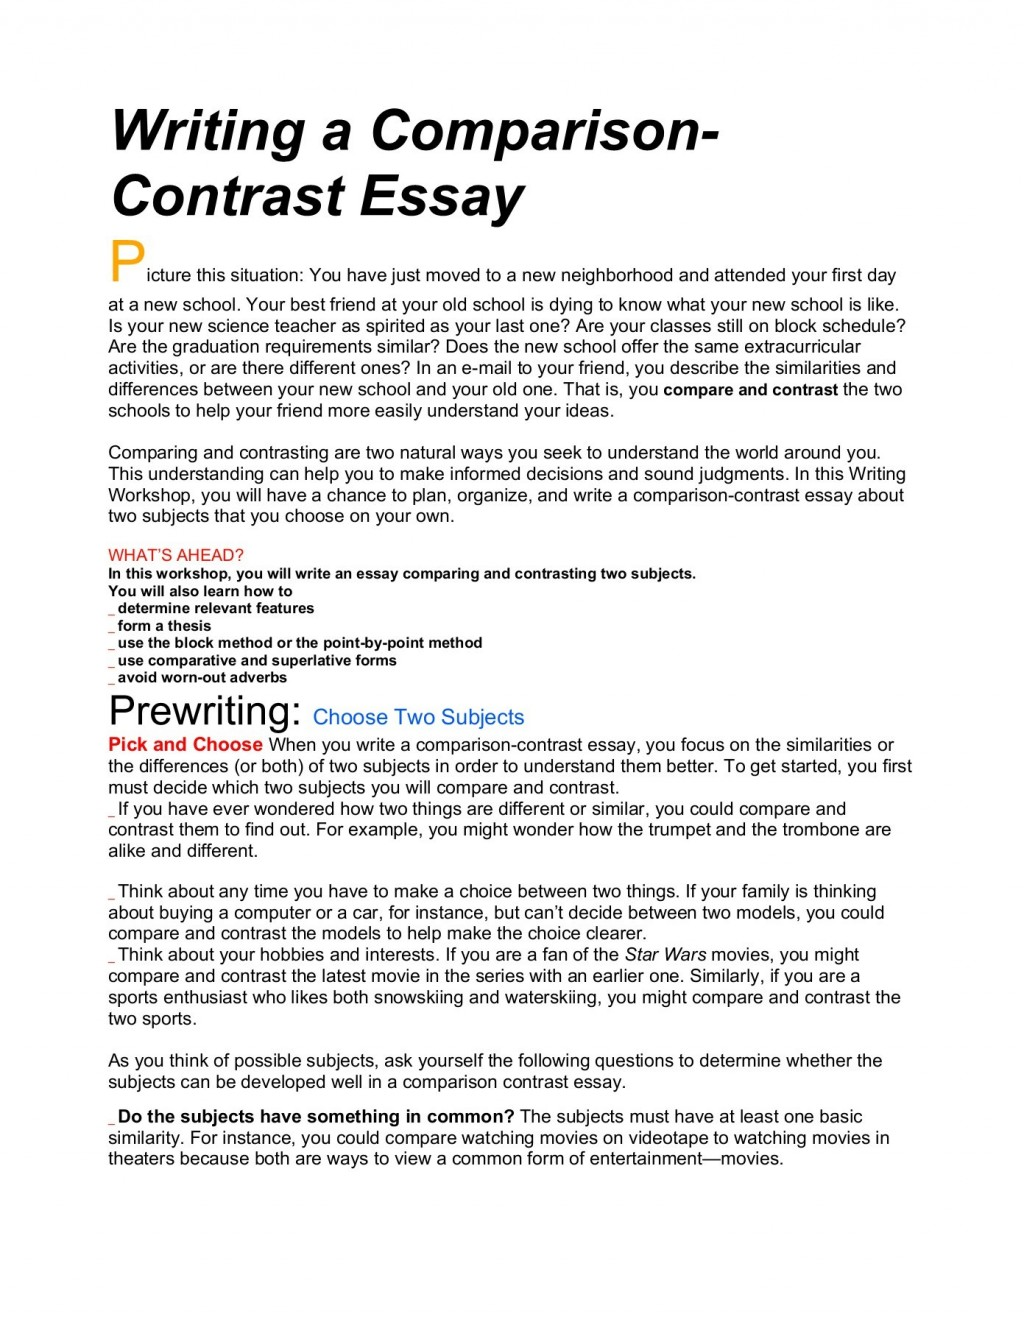 007 Compare Contrast Essay Fascinating Topics And Graphic Organizer Julius Caesar Answers High School Large